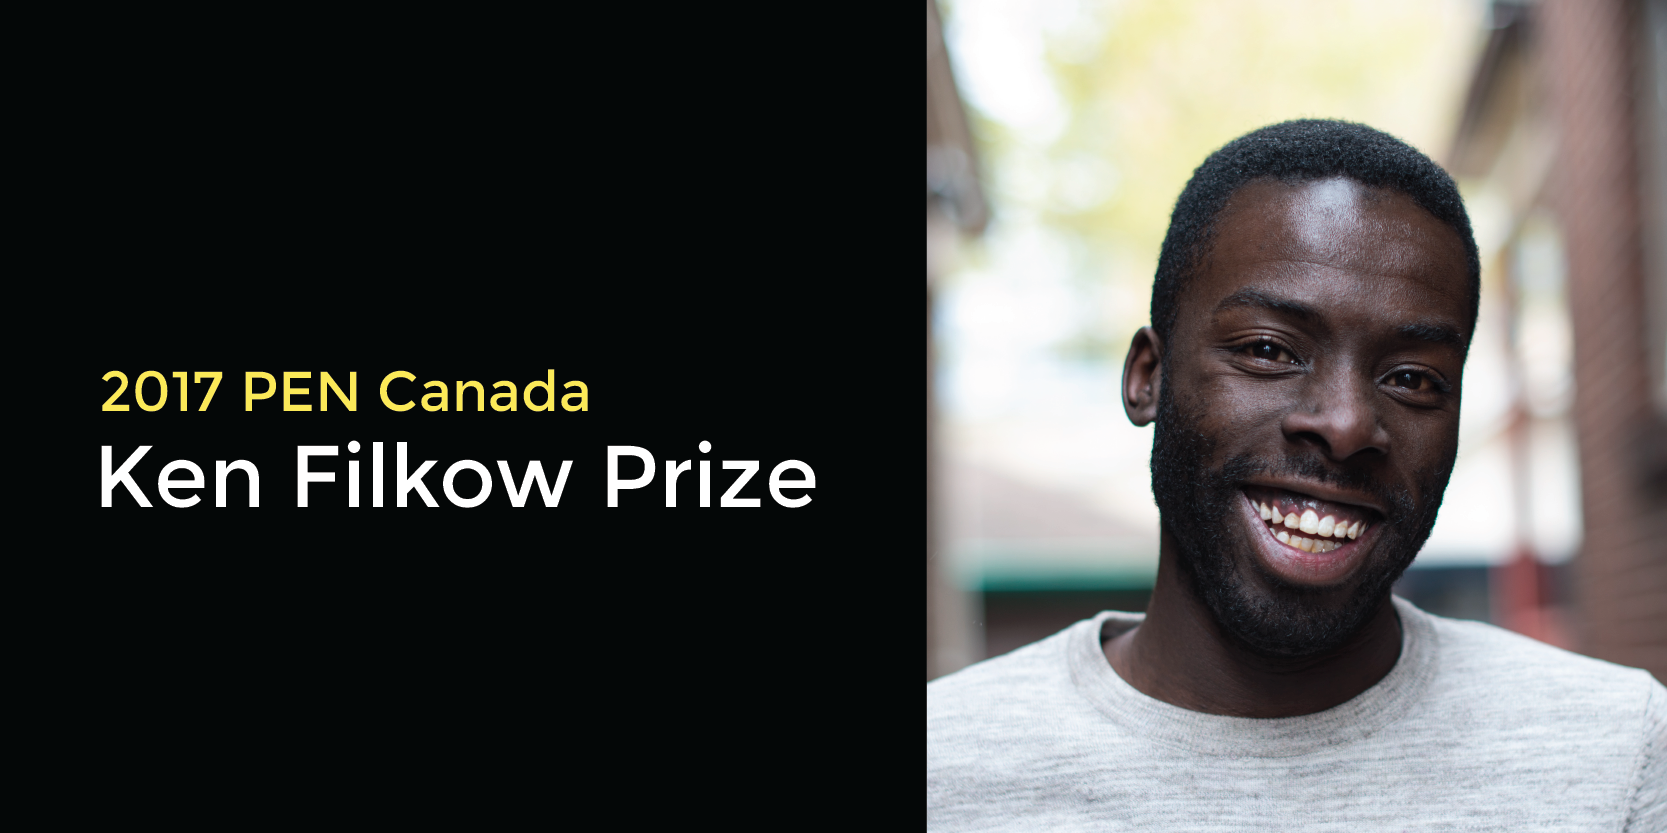 Desmond Cole wins 2017 PEN Canada/Ken Filkow Prize for freedom of expression